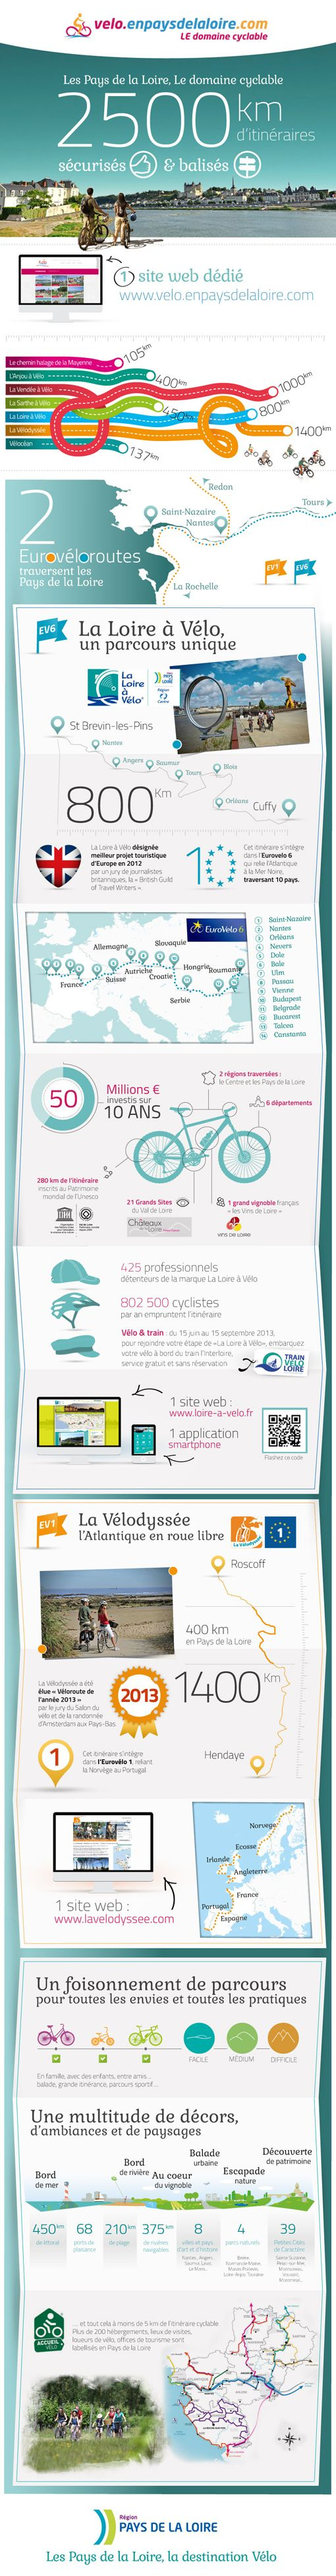 infographie-itineraire-velo